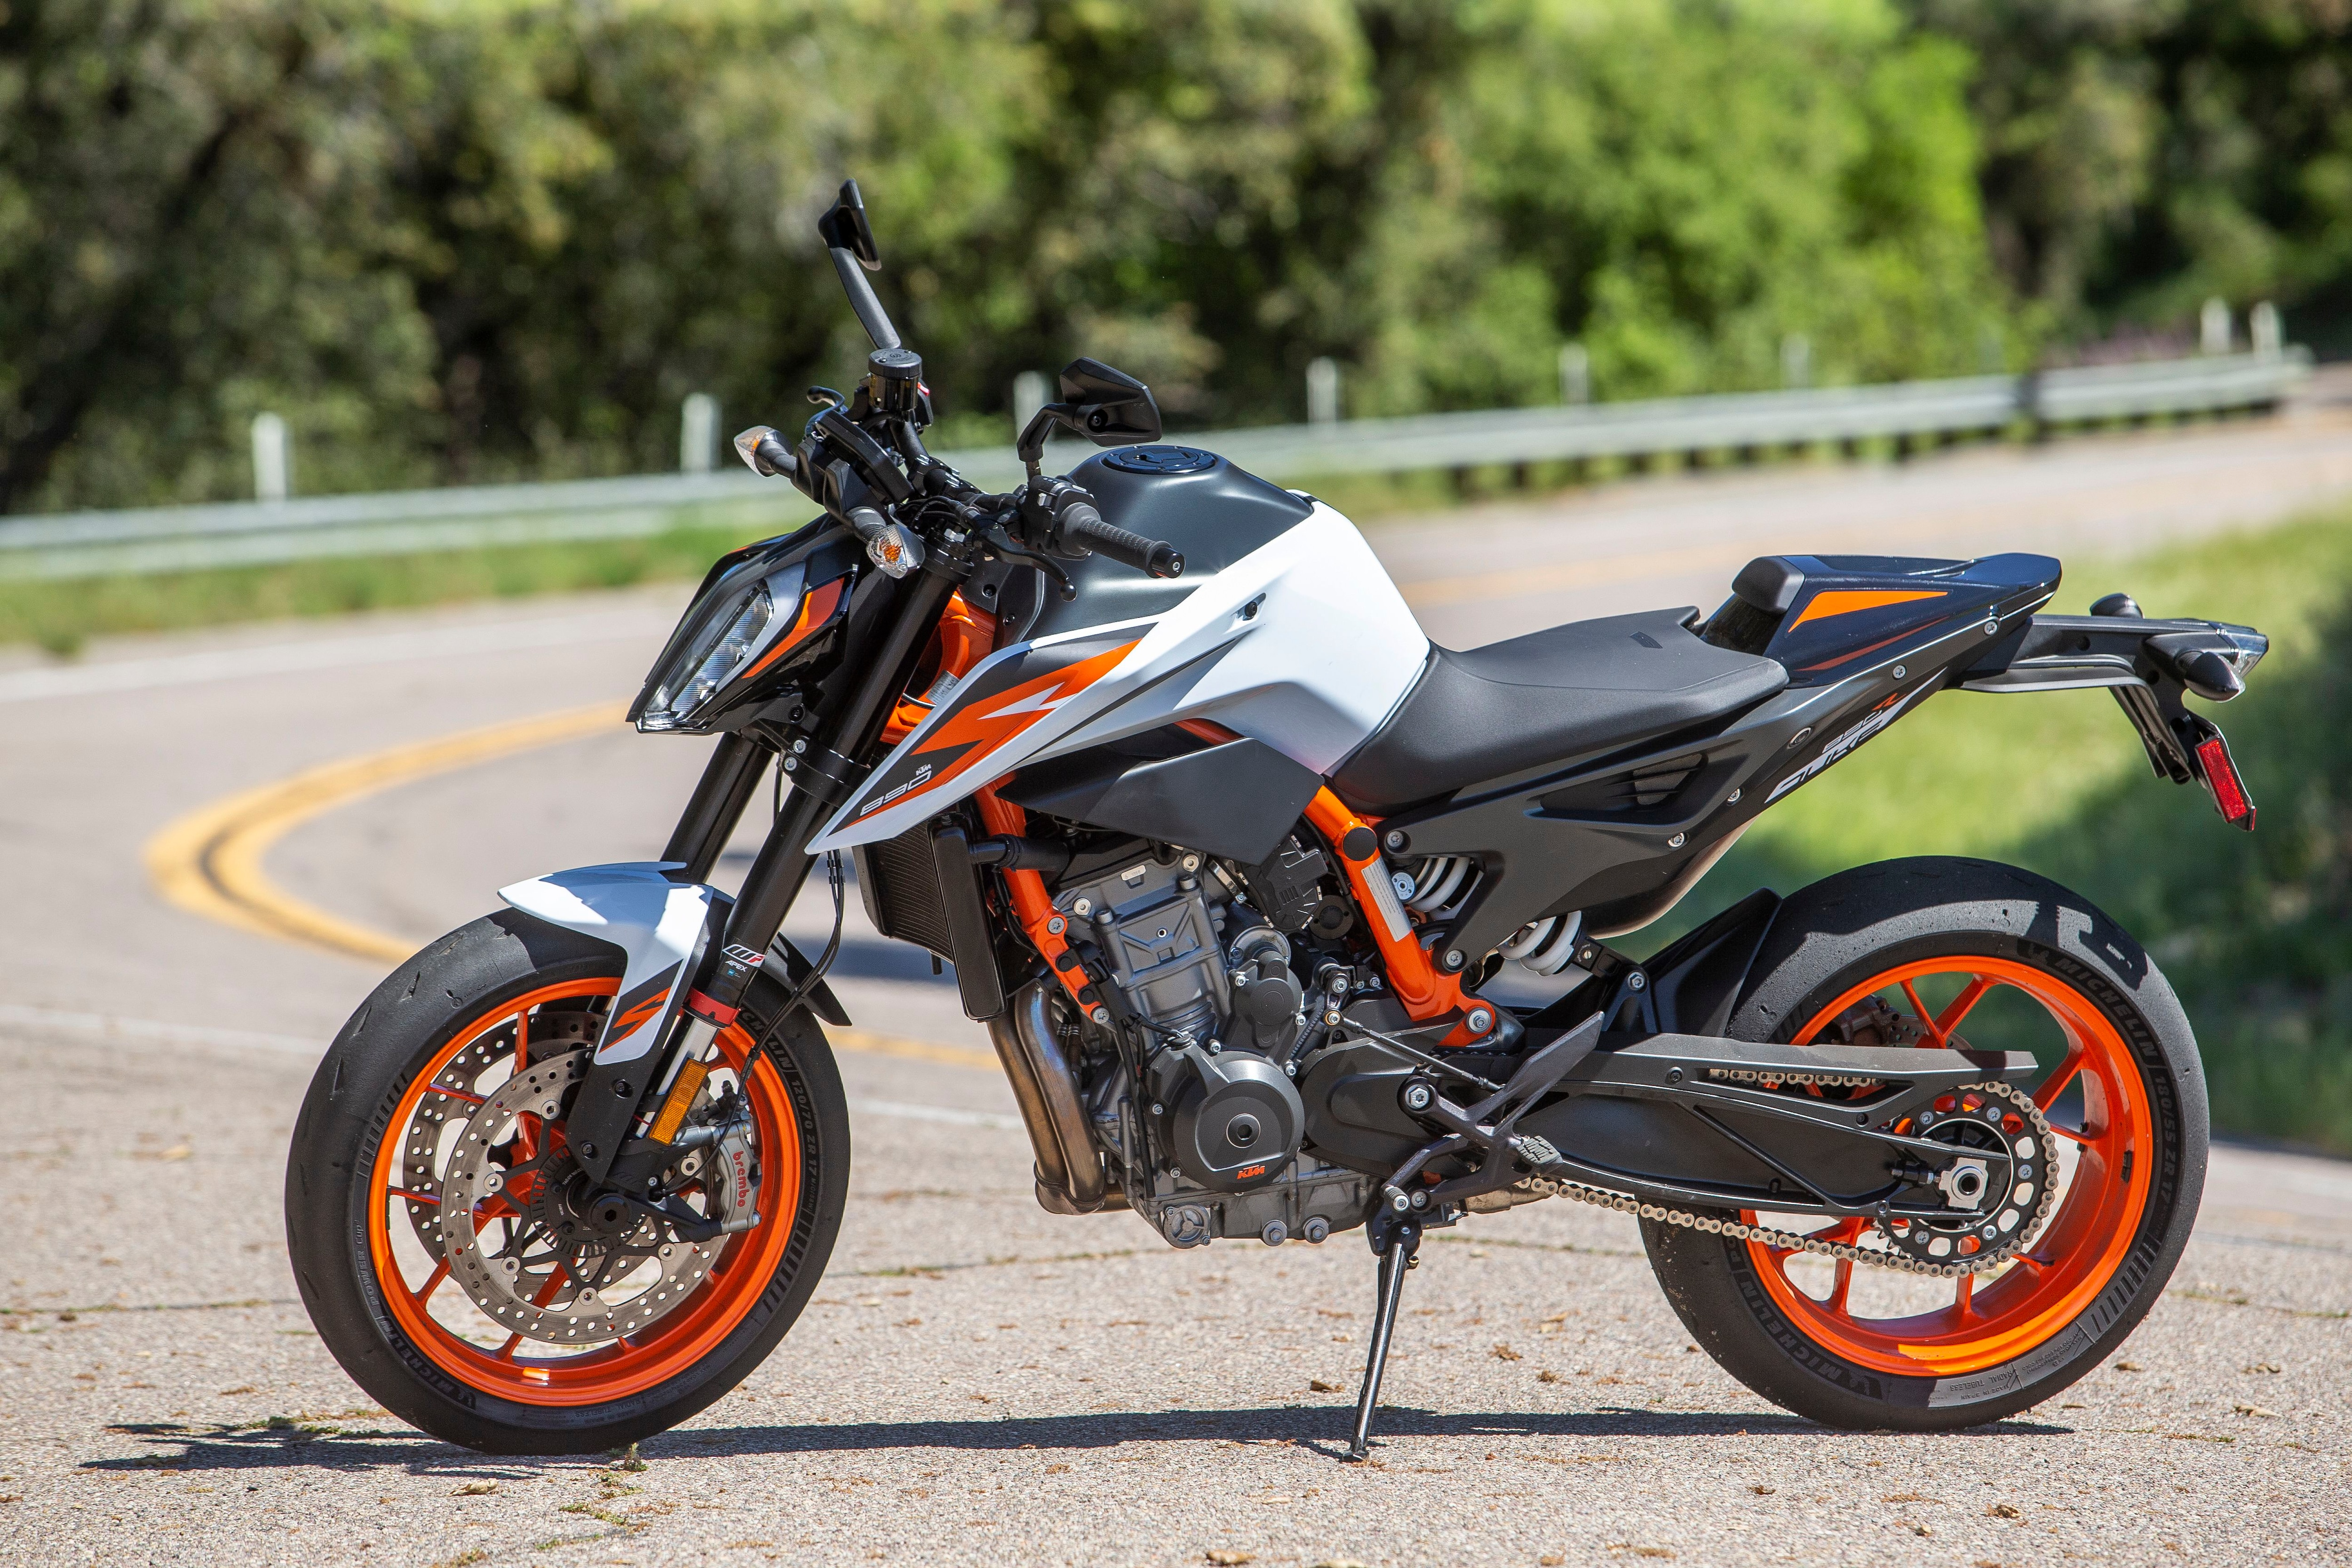 The 890 Duke R weighs in at 407 pounds with its 3.7-gallon tank filled to the brim. In motion, it feels even lighter than its curb weight implies.